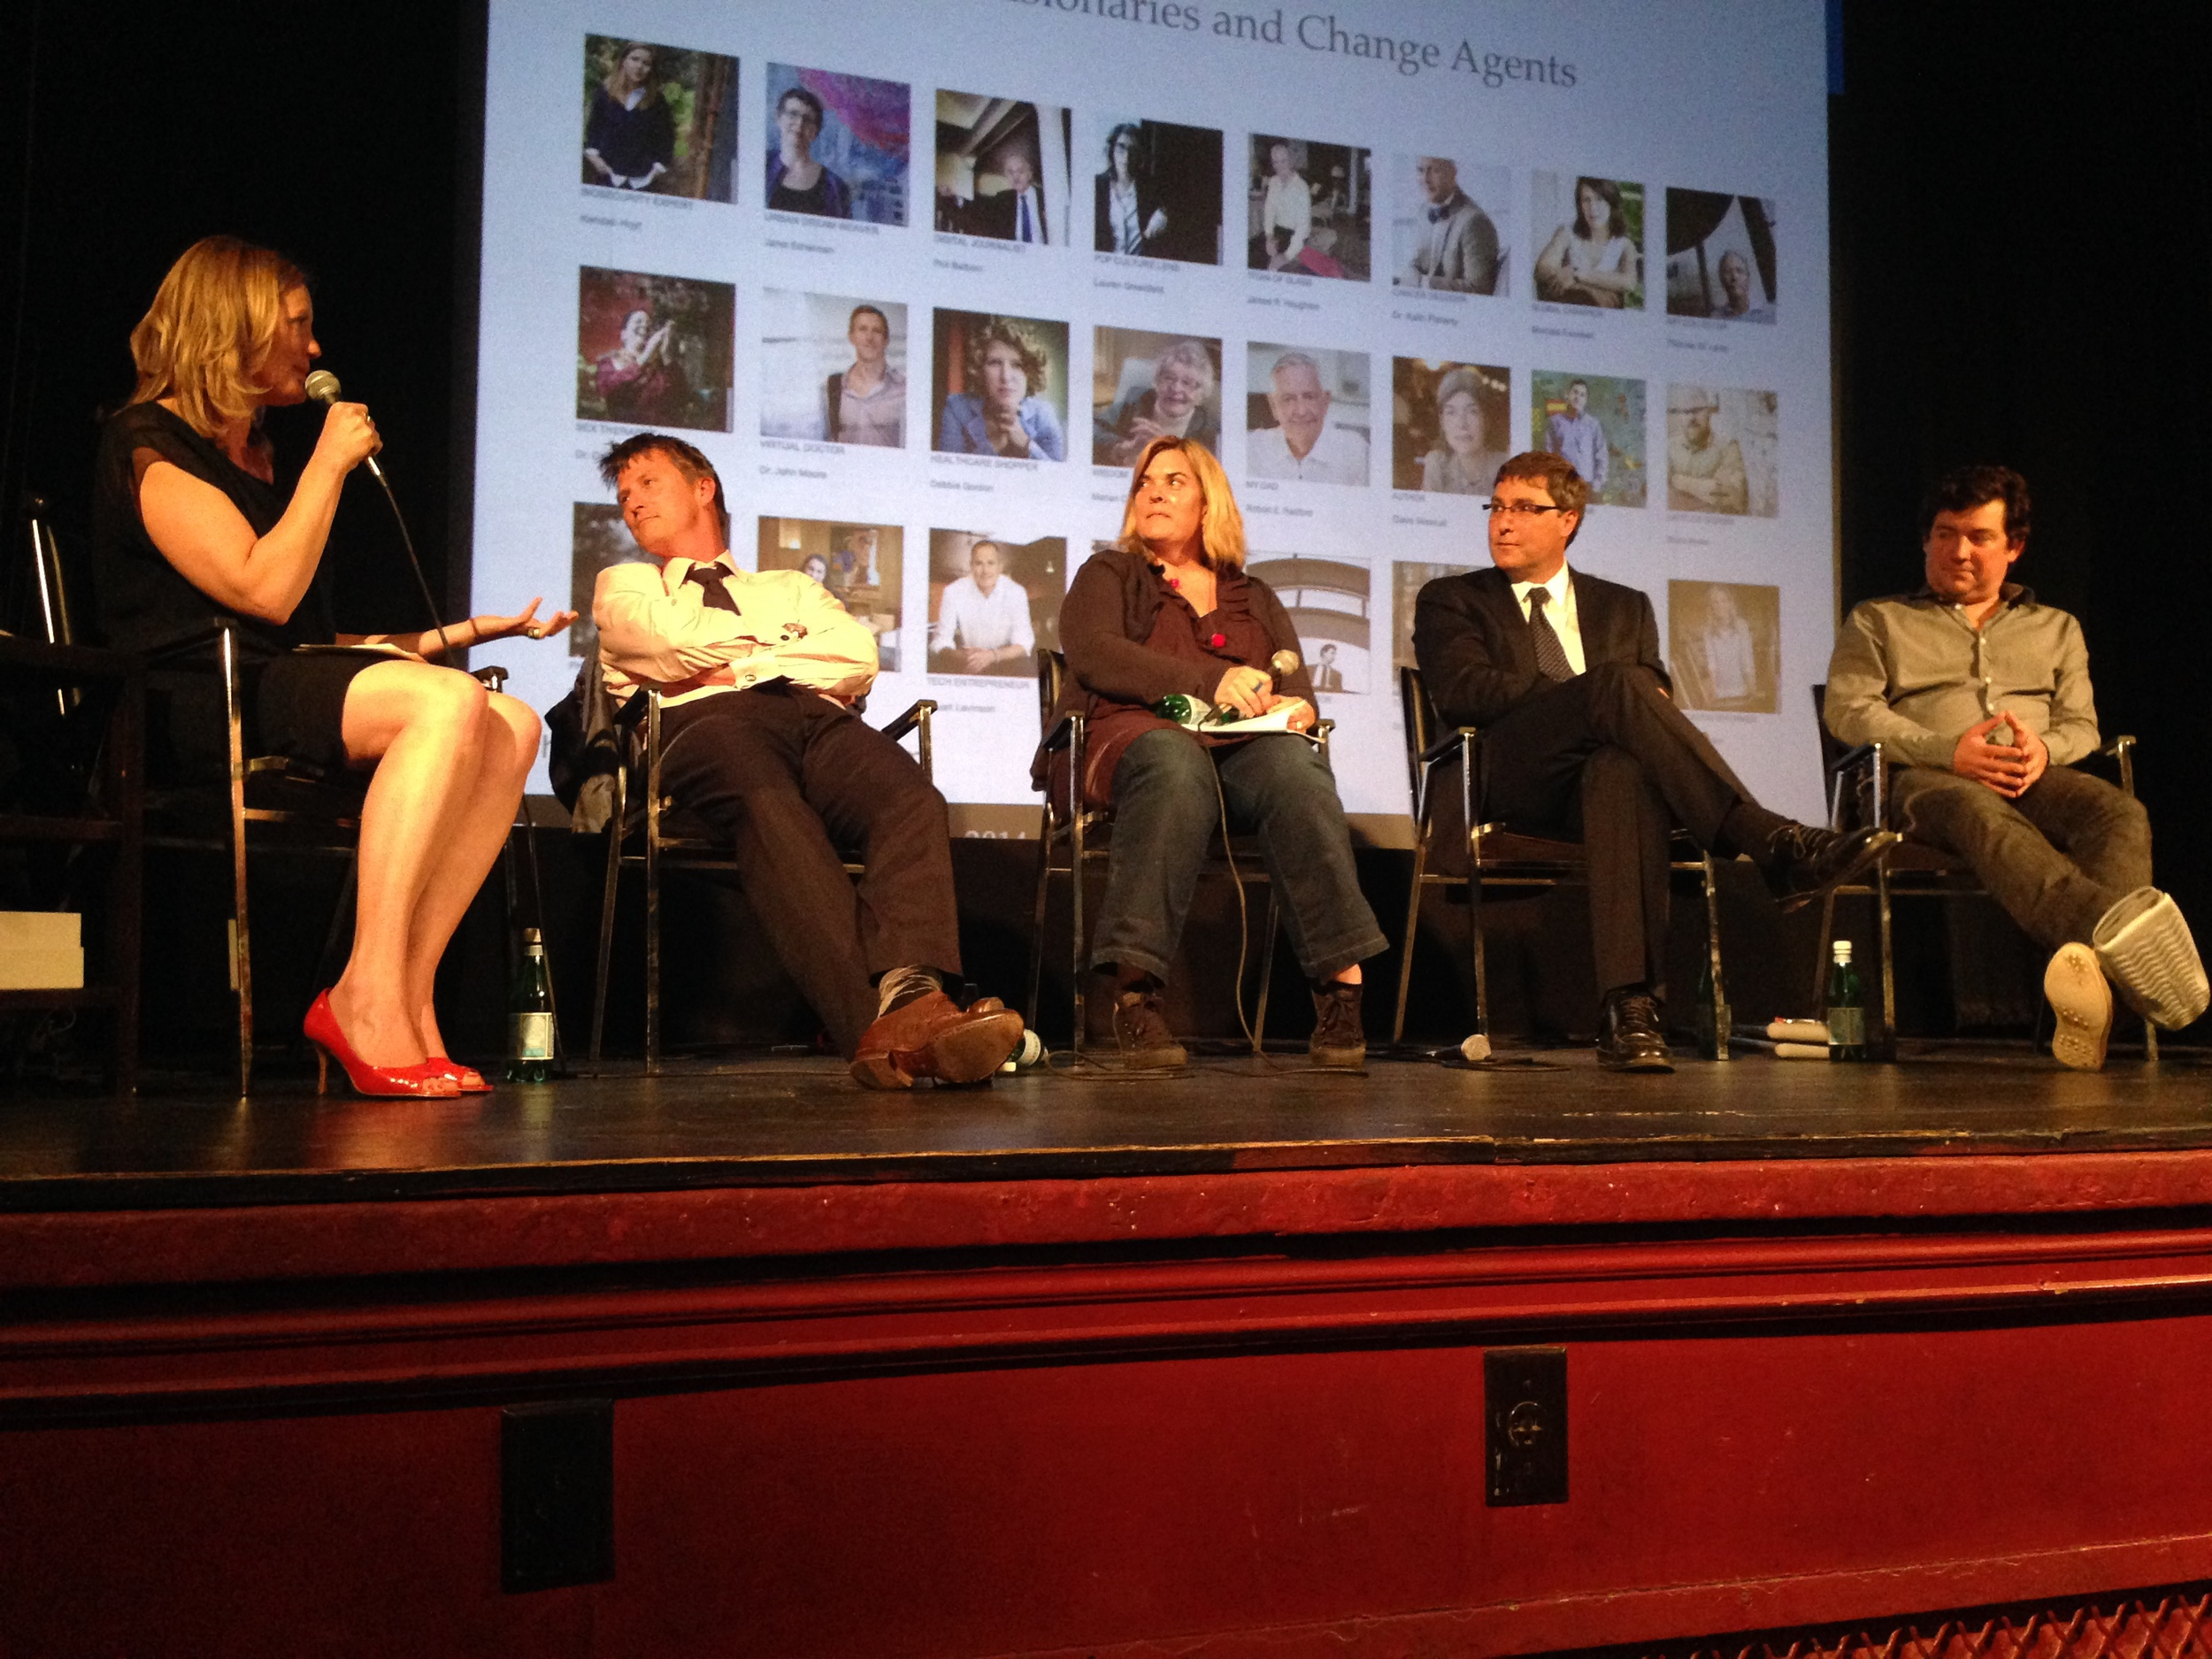 What Makes A Vibrant City? Brattle Theater